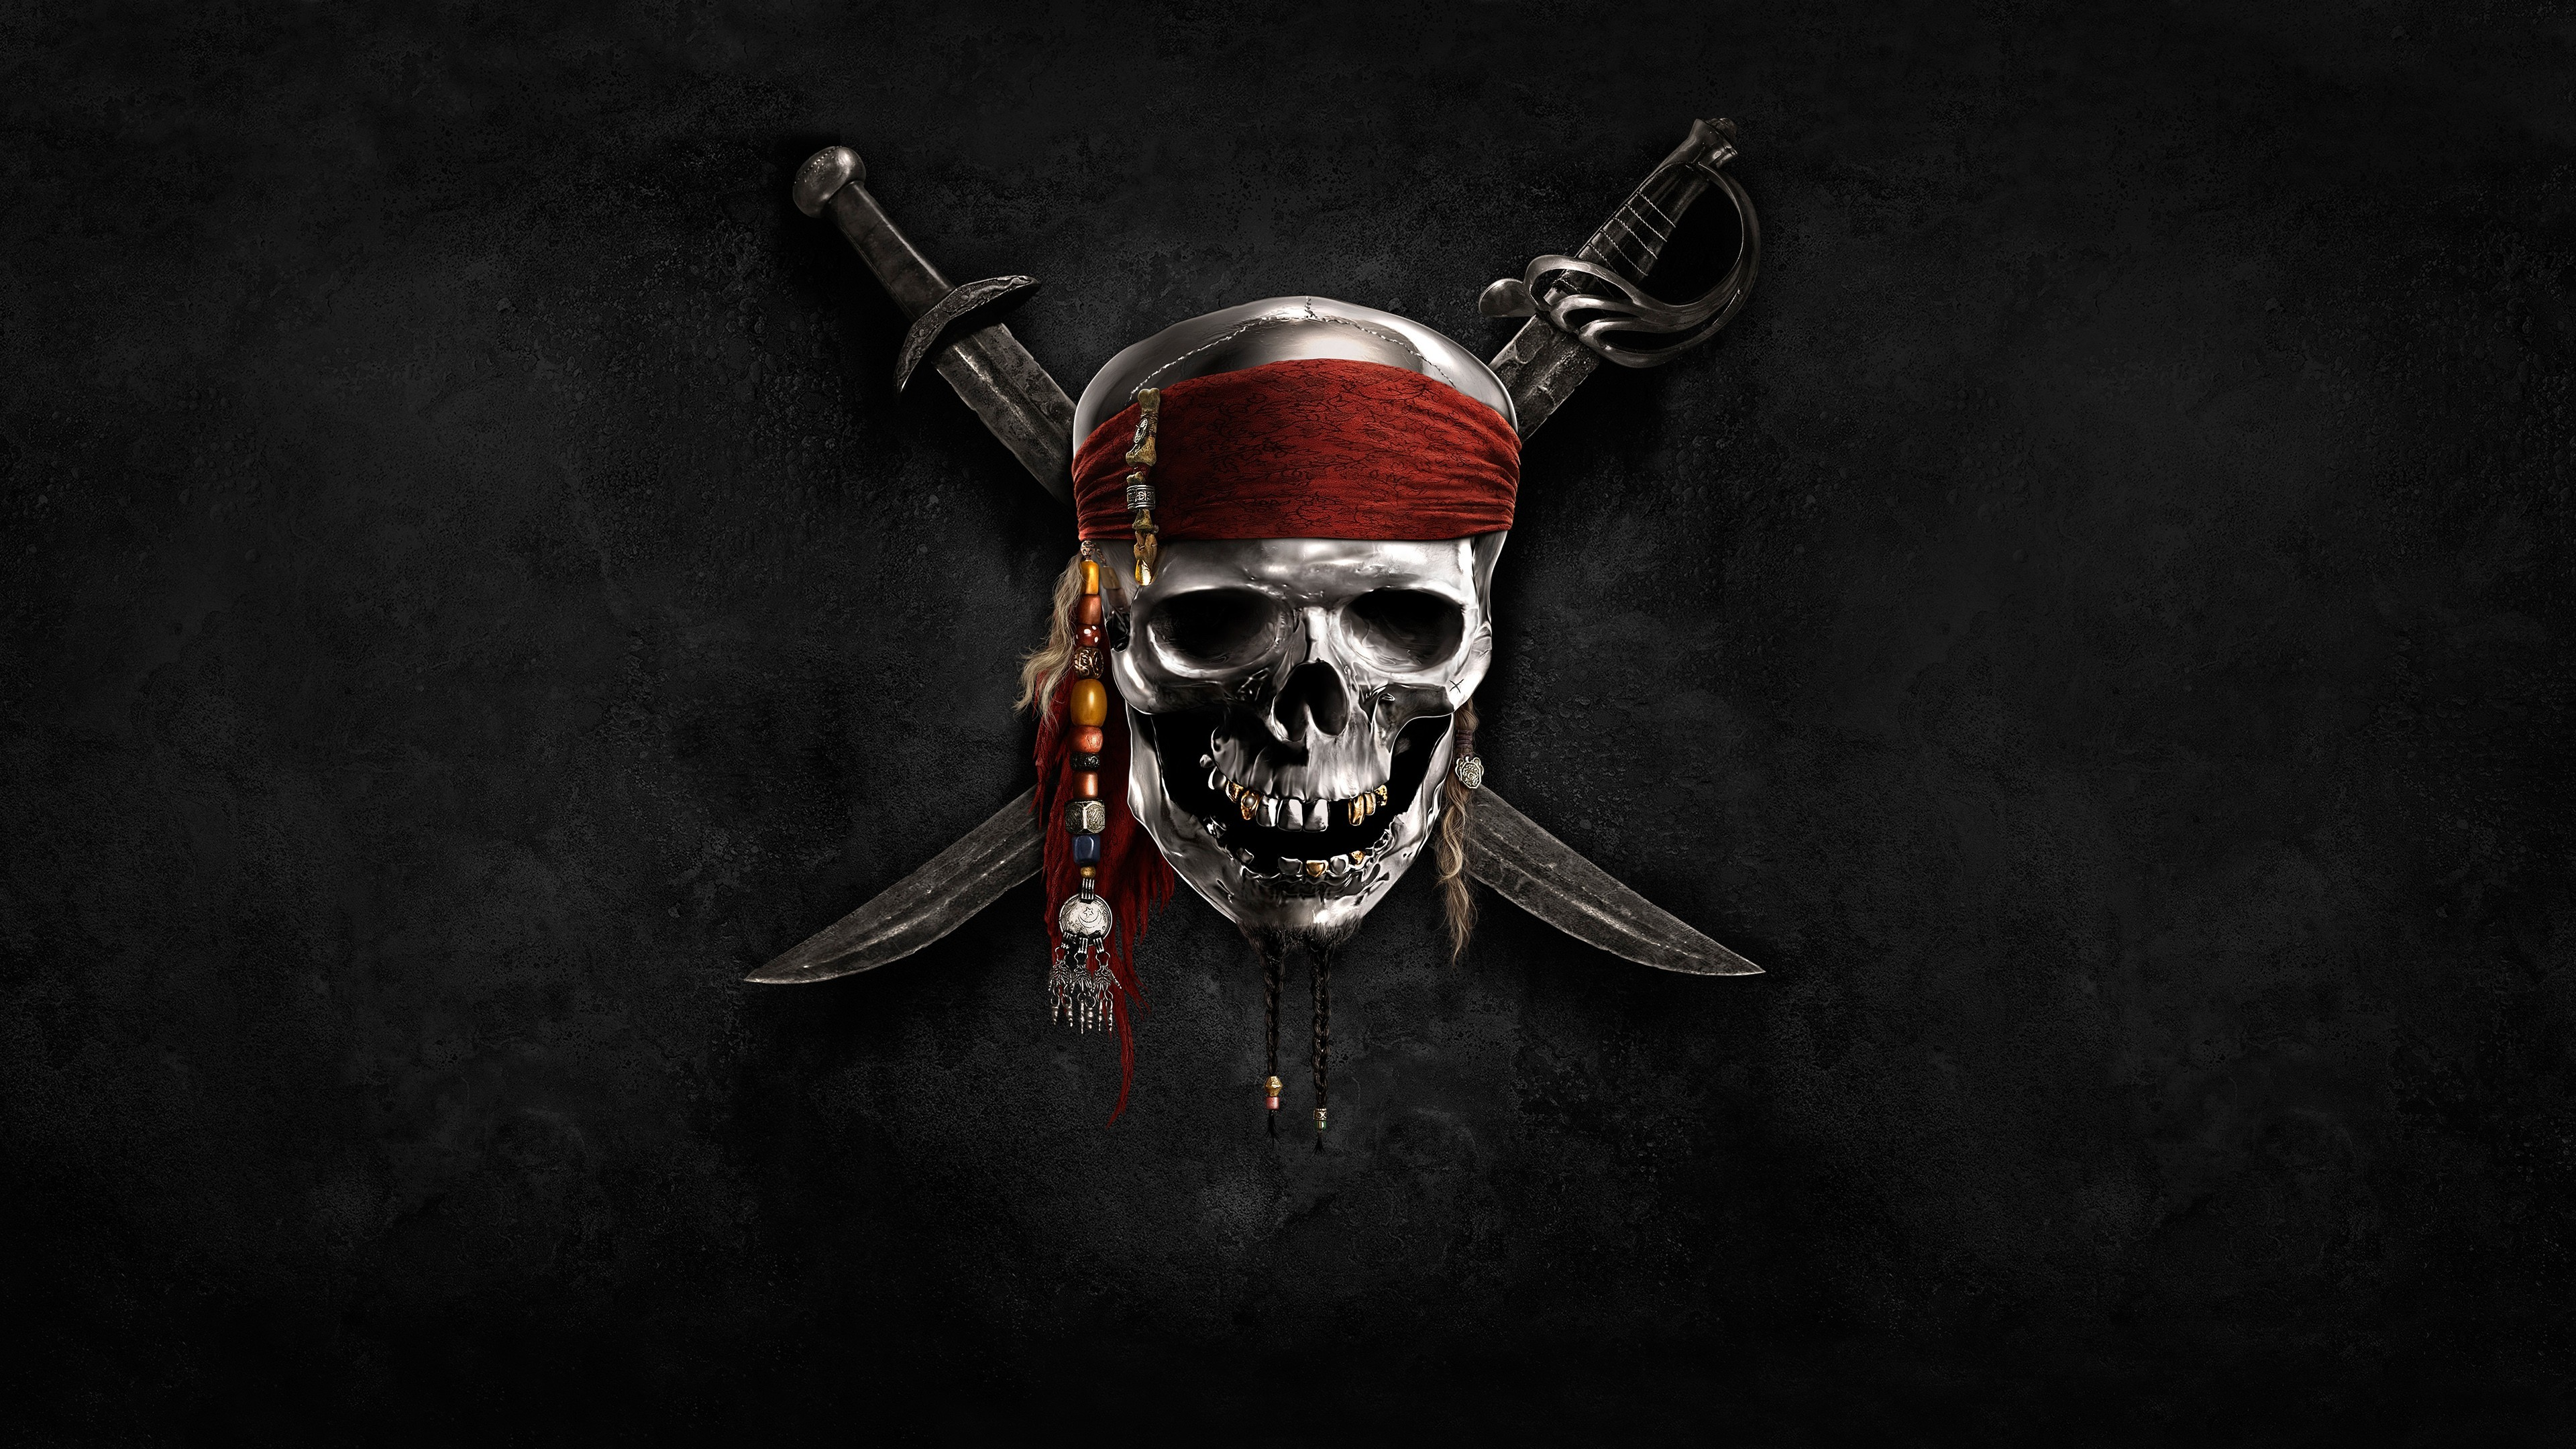 Wallpaper pirate 77 images - Pirates of the caribbean wallpaper ...